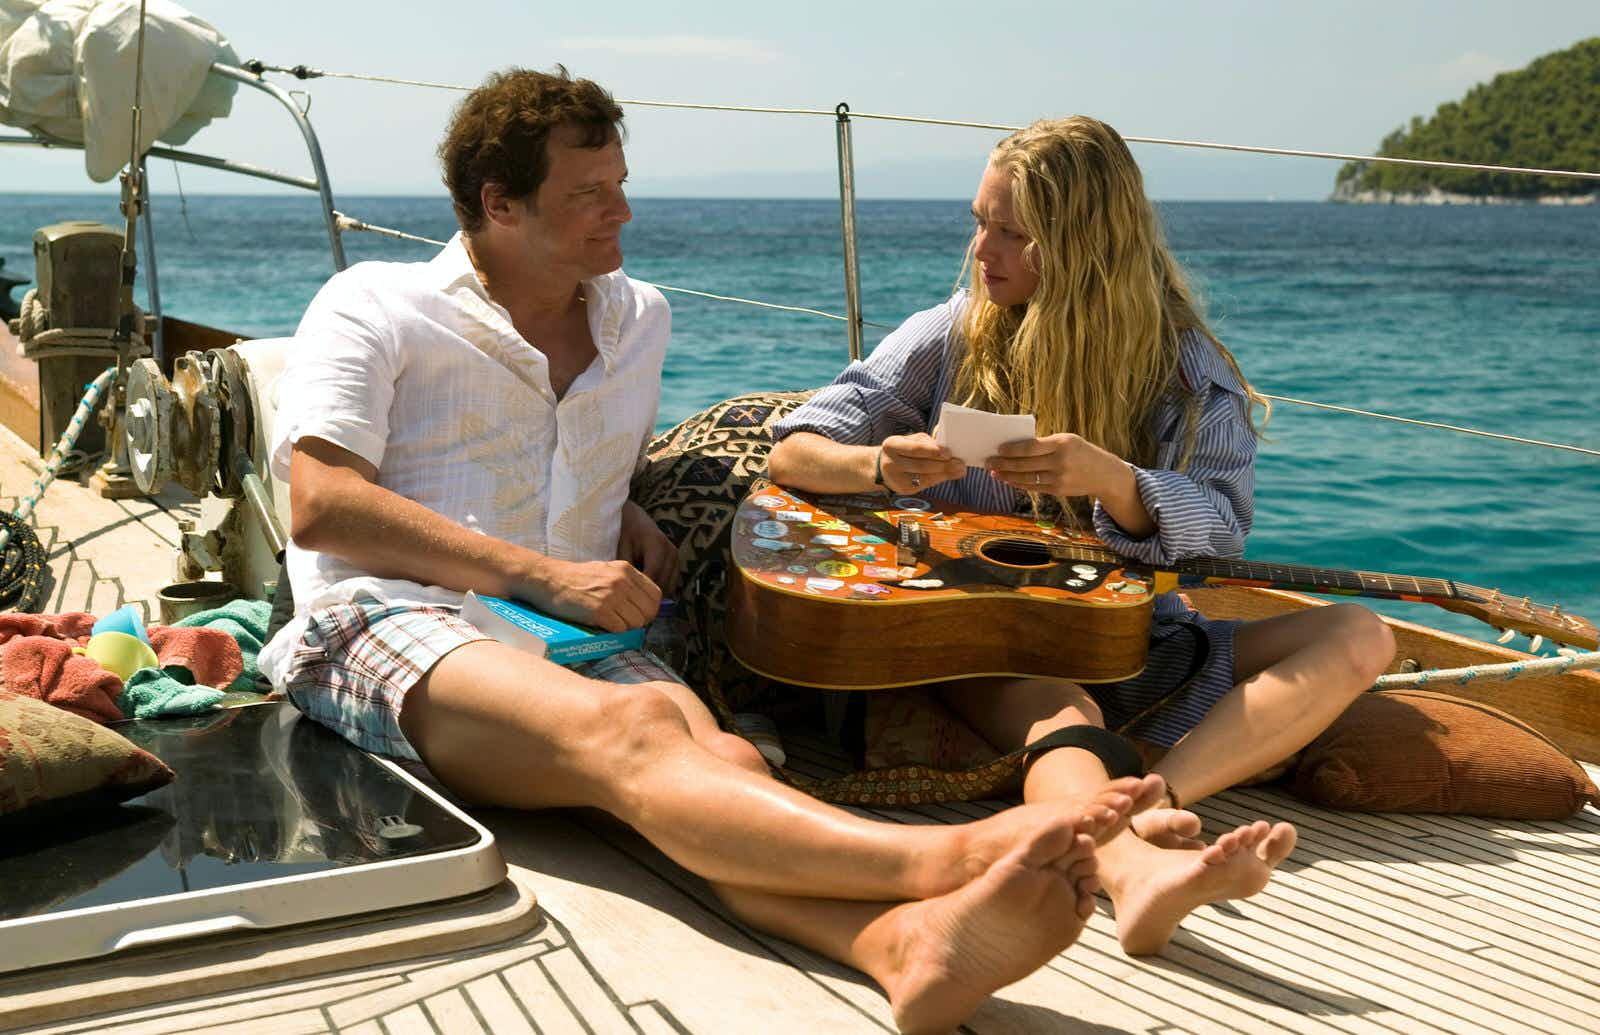 Colin Firth and Amanda Seyfried filming Mamma Mia! in gorgeous Skopelos © PictureLux / The Hollywood Archive / Alamy Stock Photo / Universal Pictures